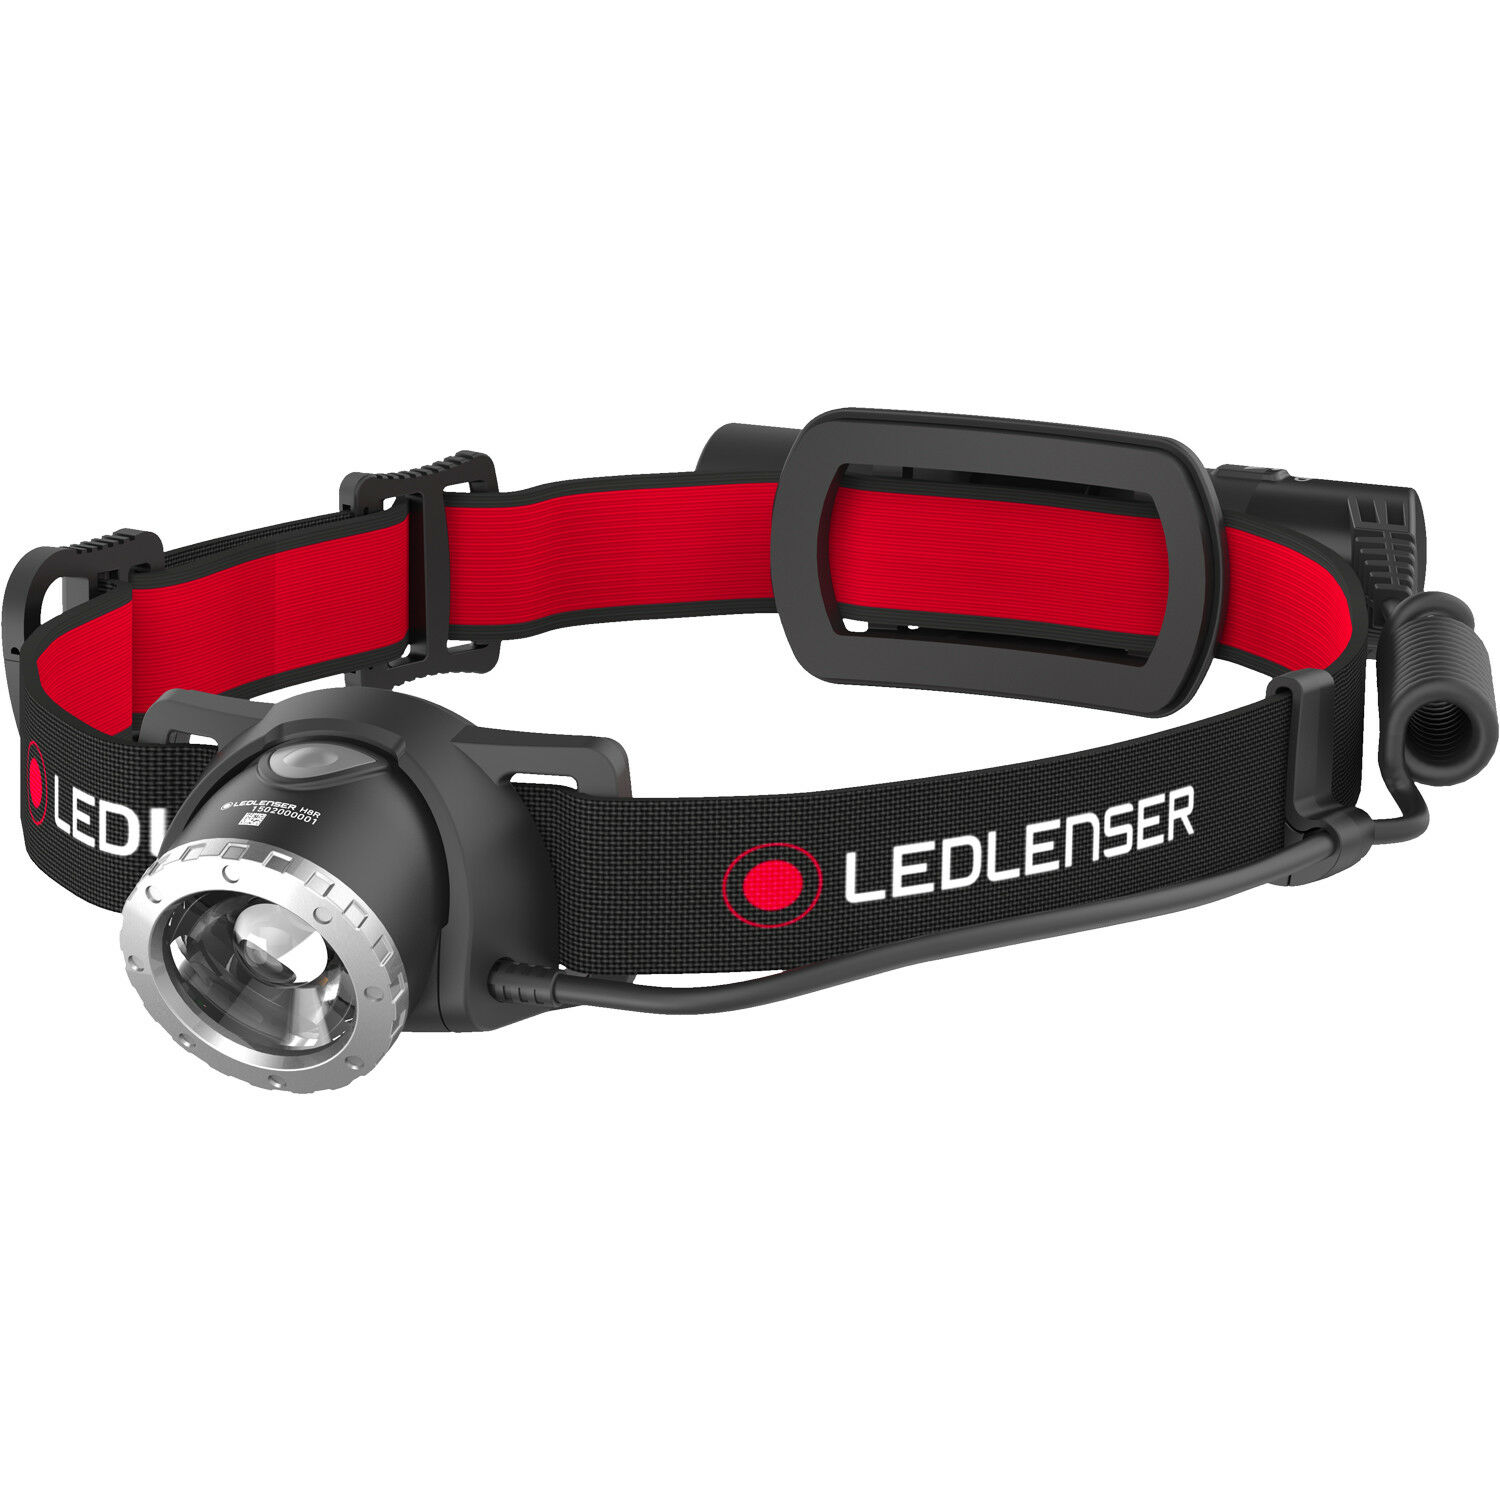 LED Lenser H8R Rechargeable Head Torch 600 Lumens